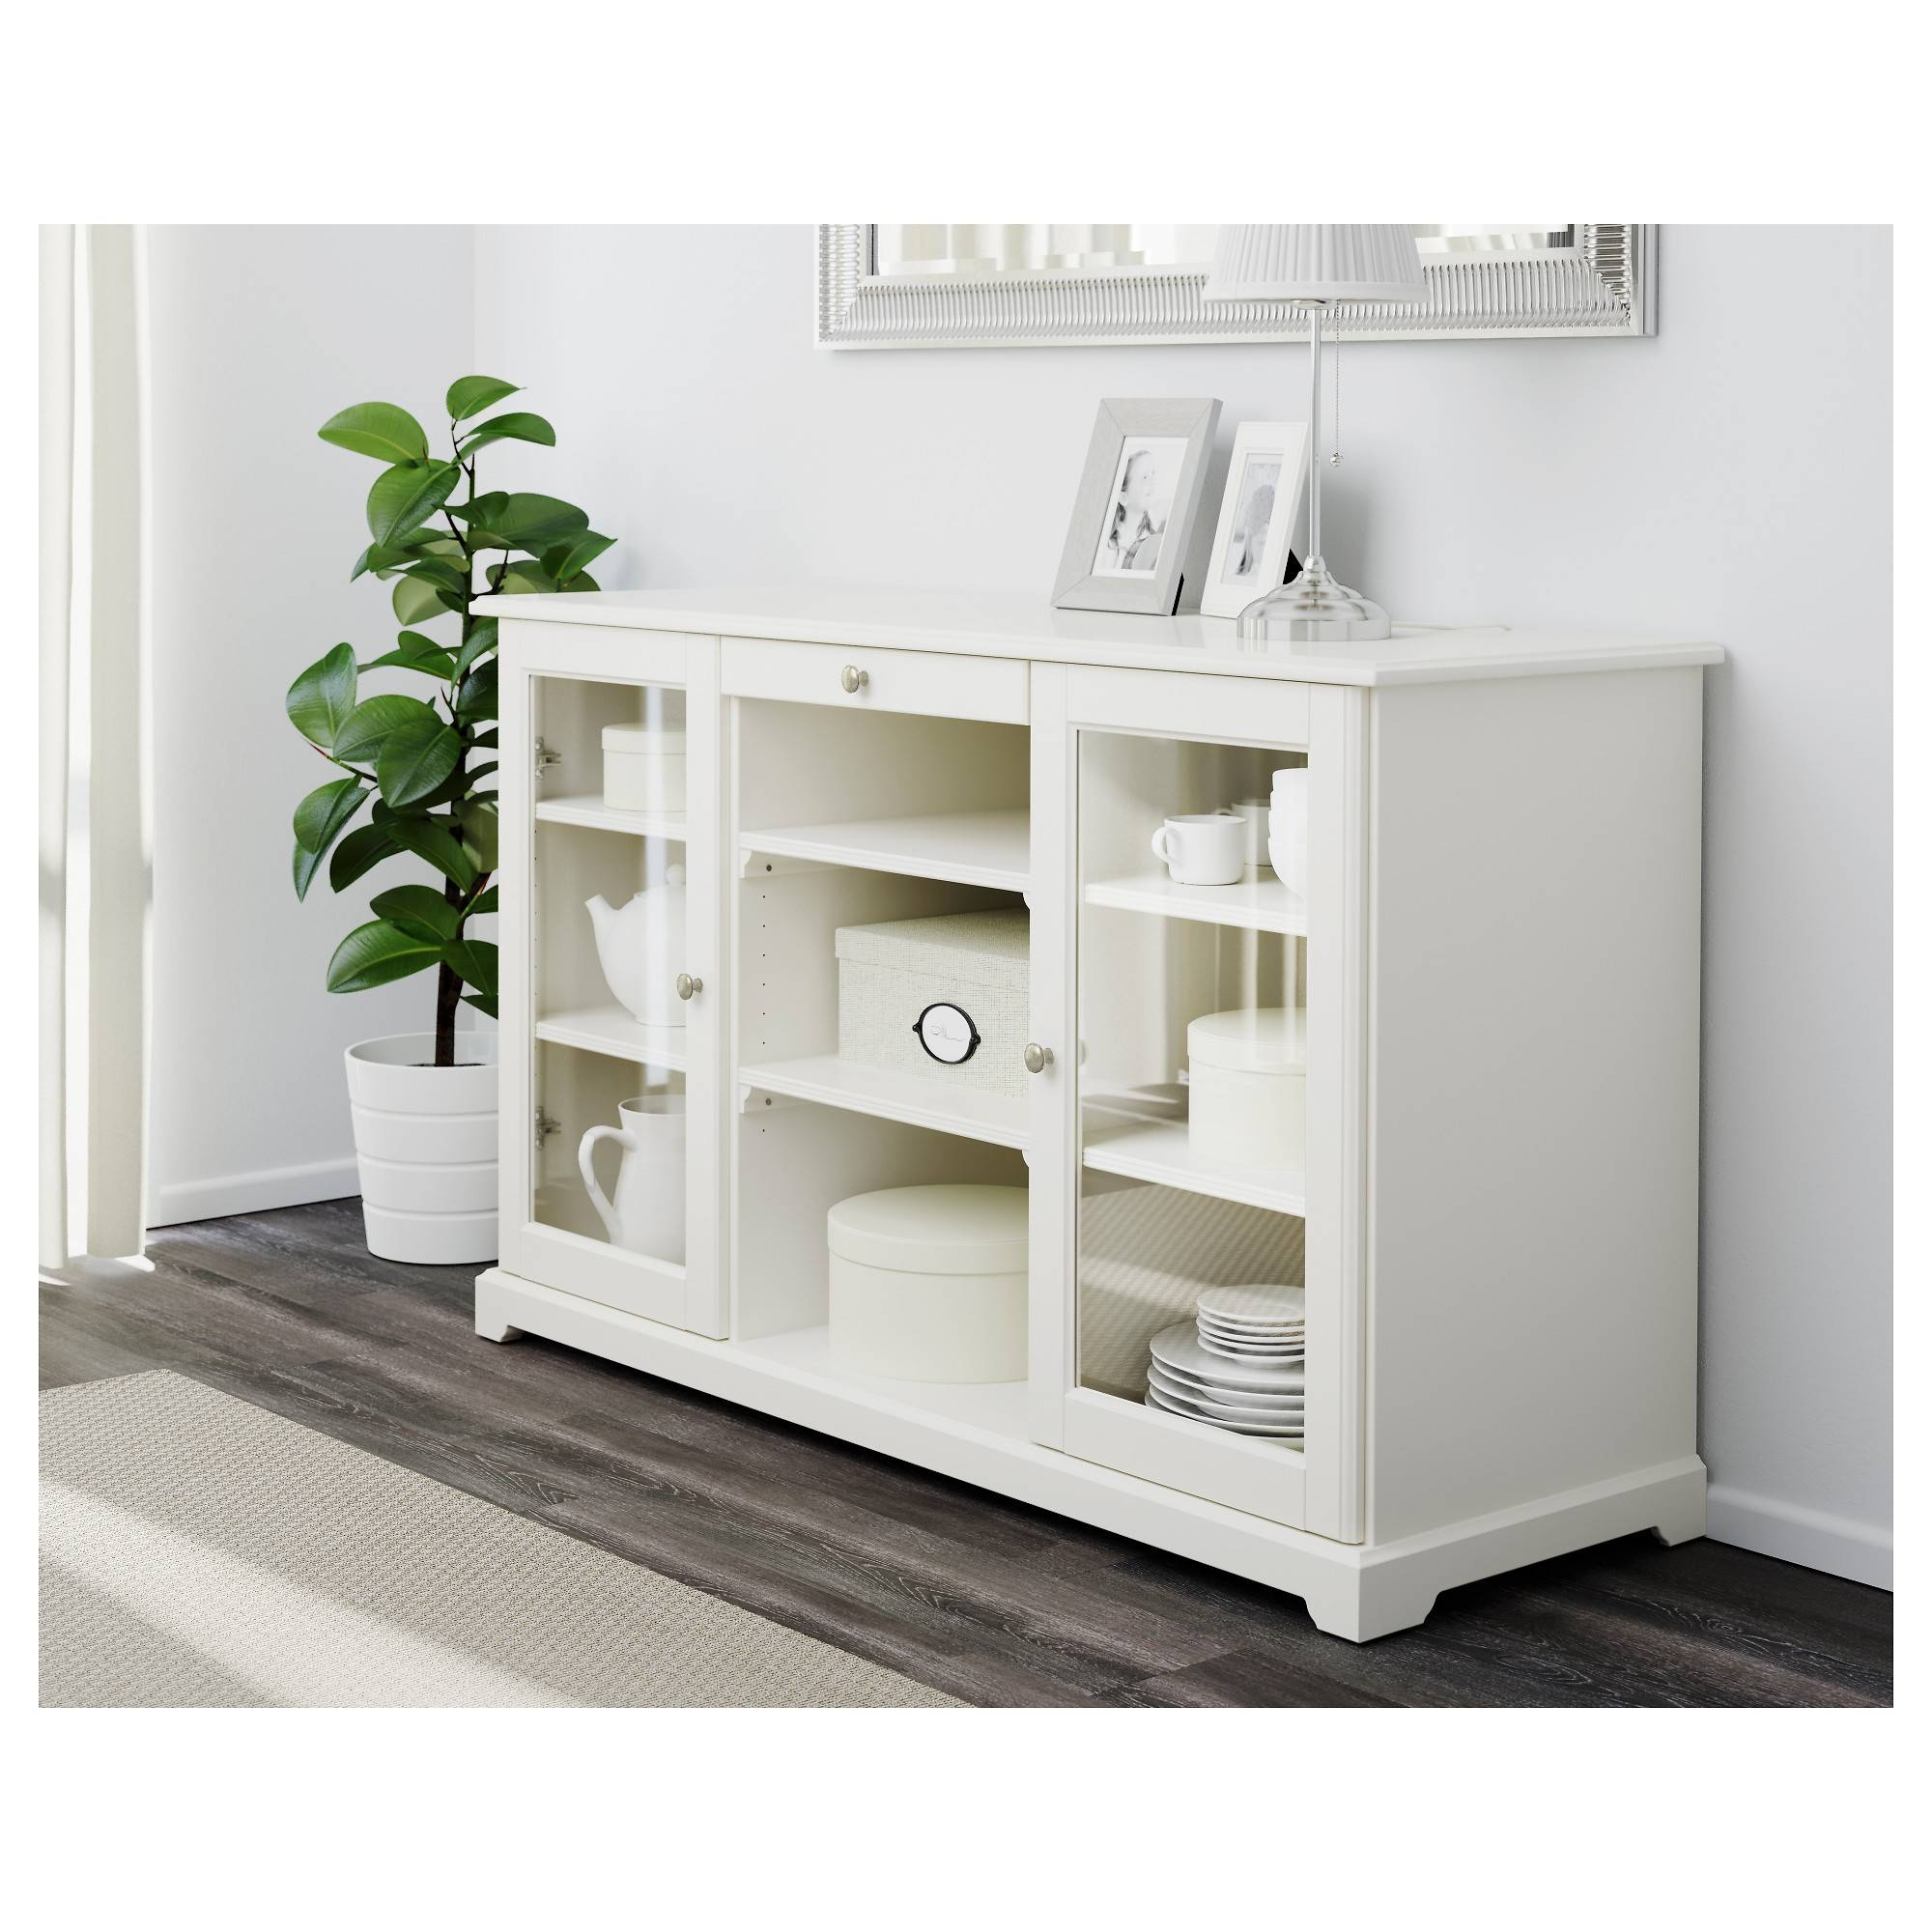 Liatorp Sideboard - White - Ikea for Off White Sideboards (Image 5 of 15)